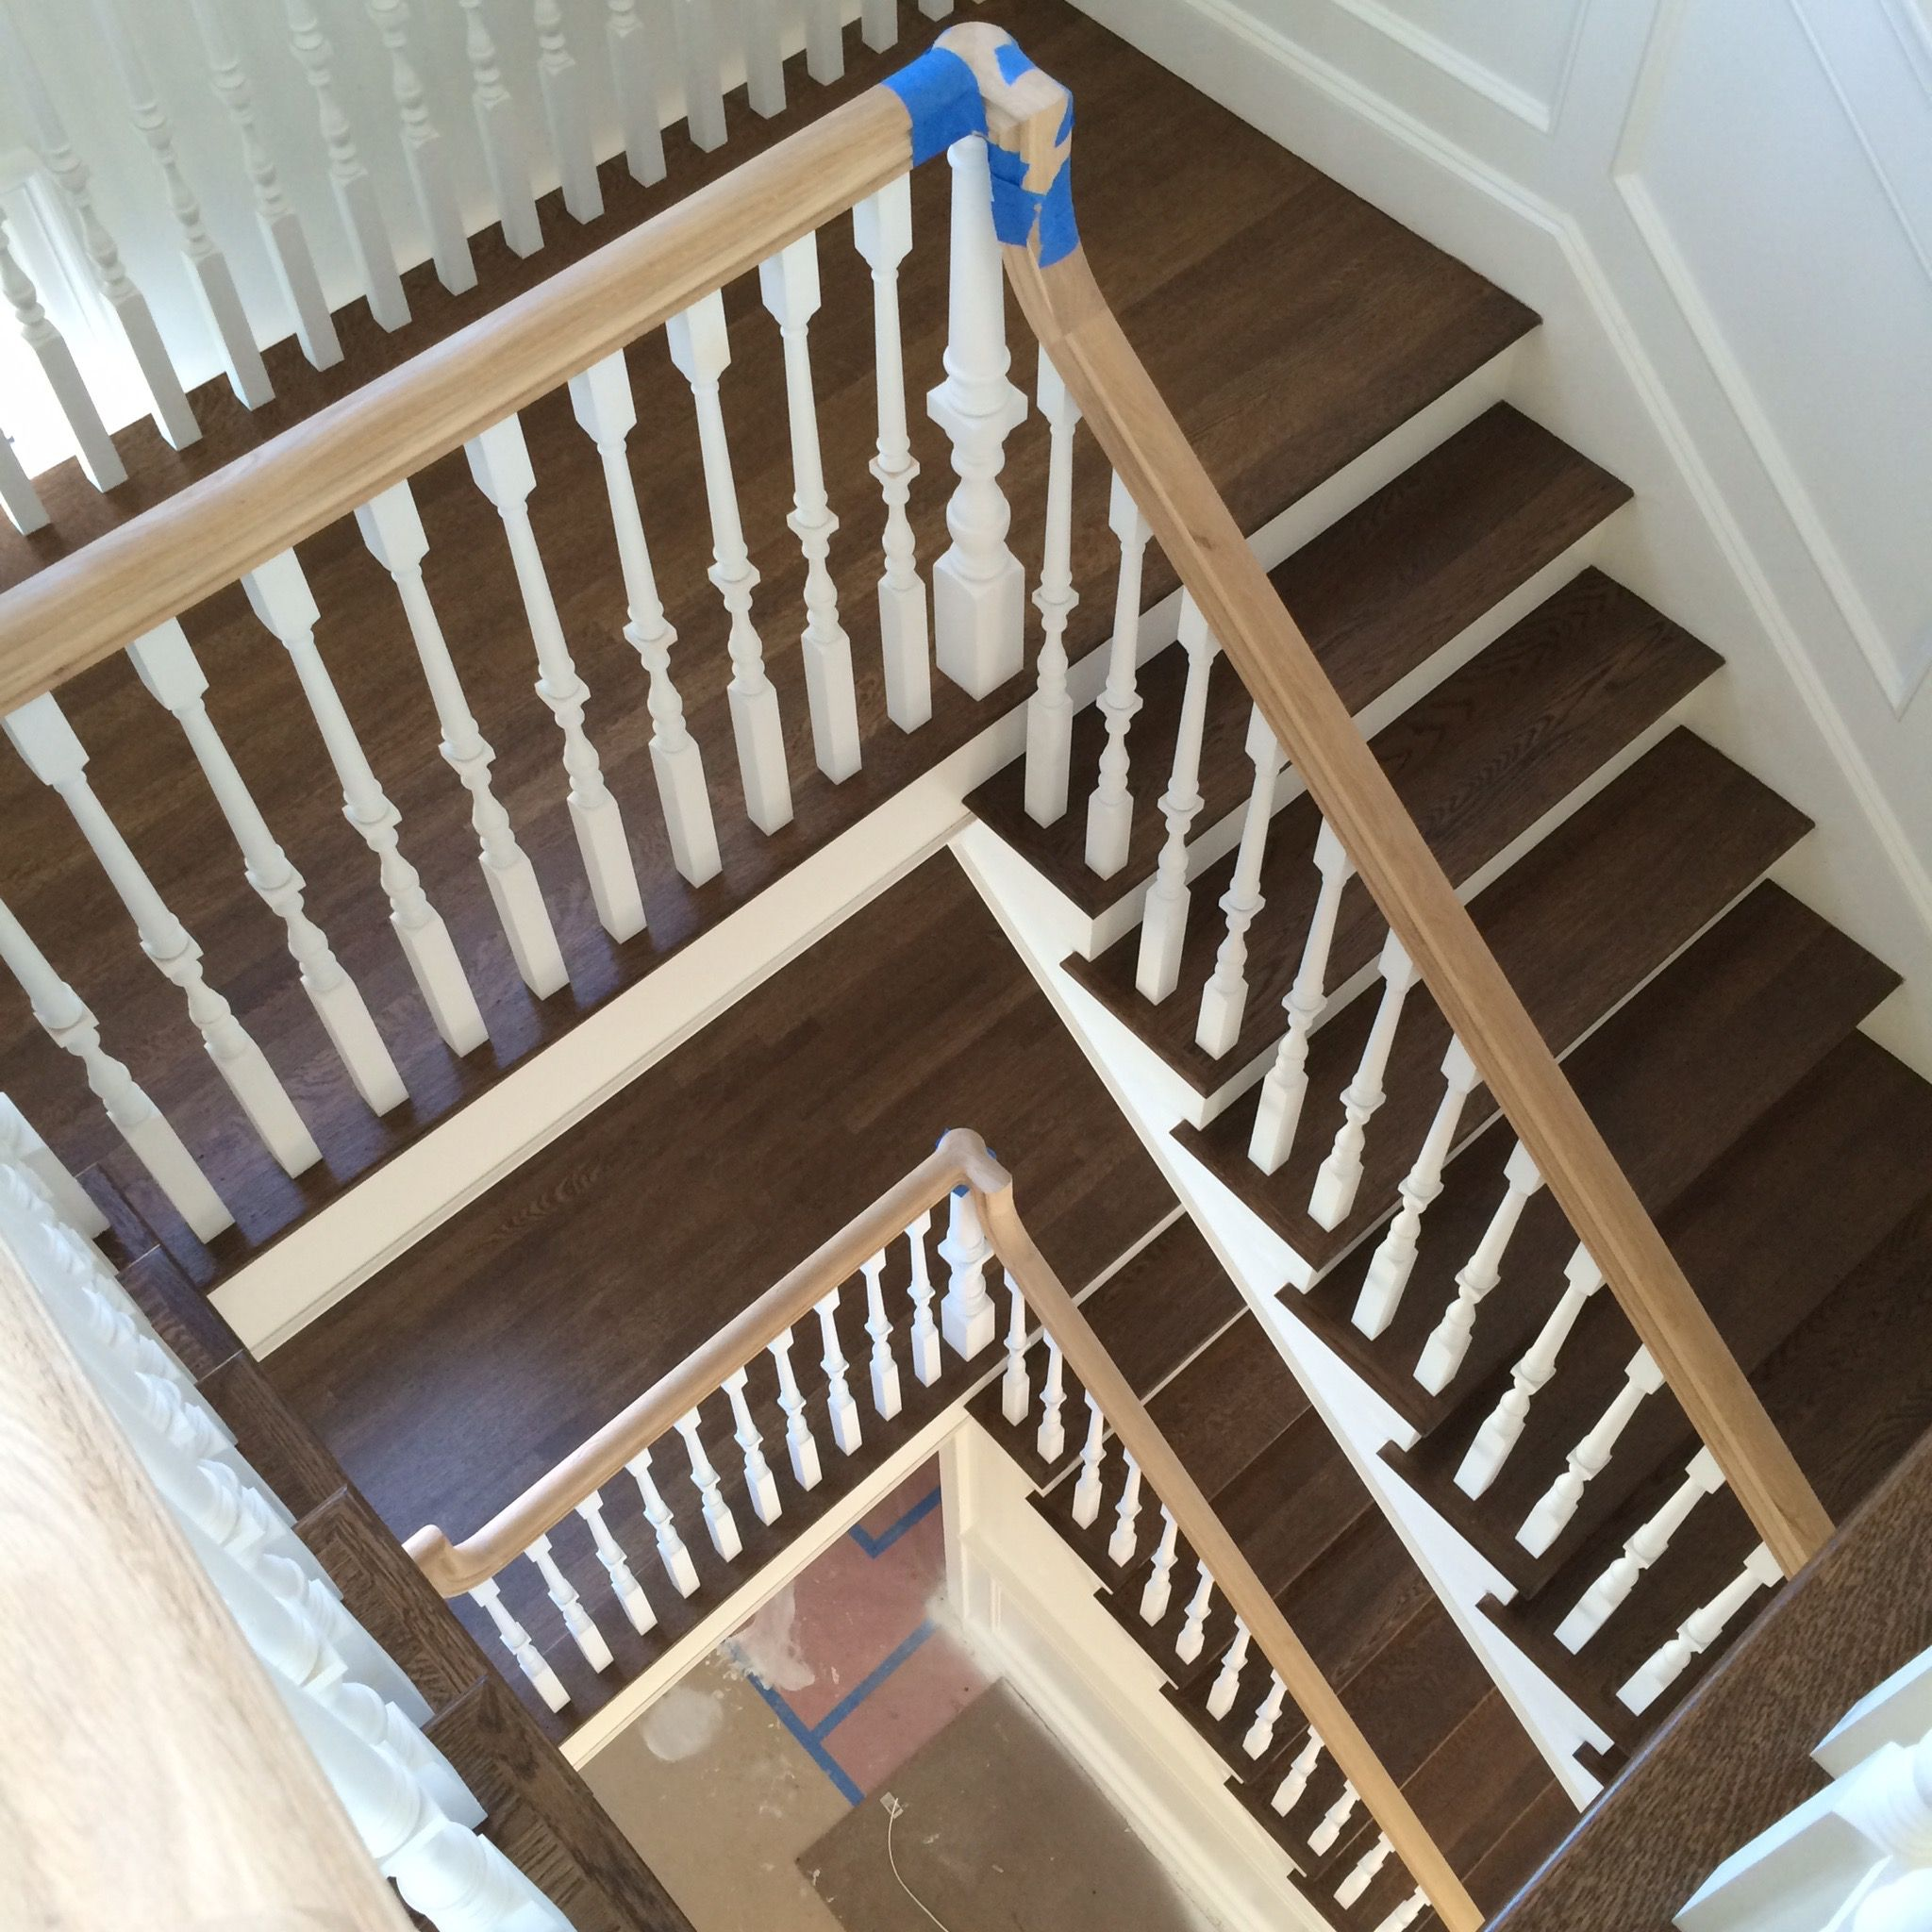 White oak hardwood stair treads, finished with Bona